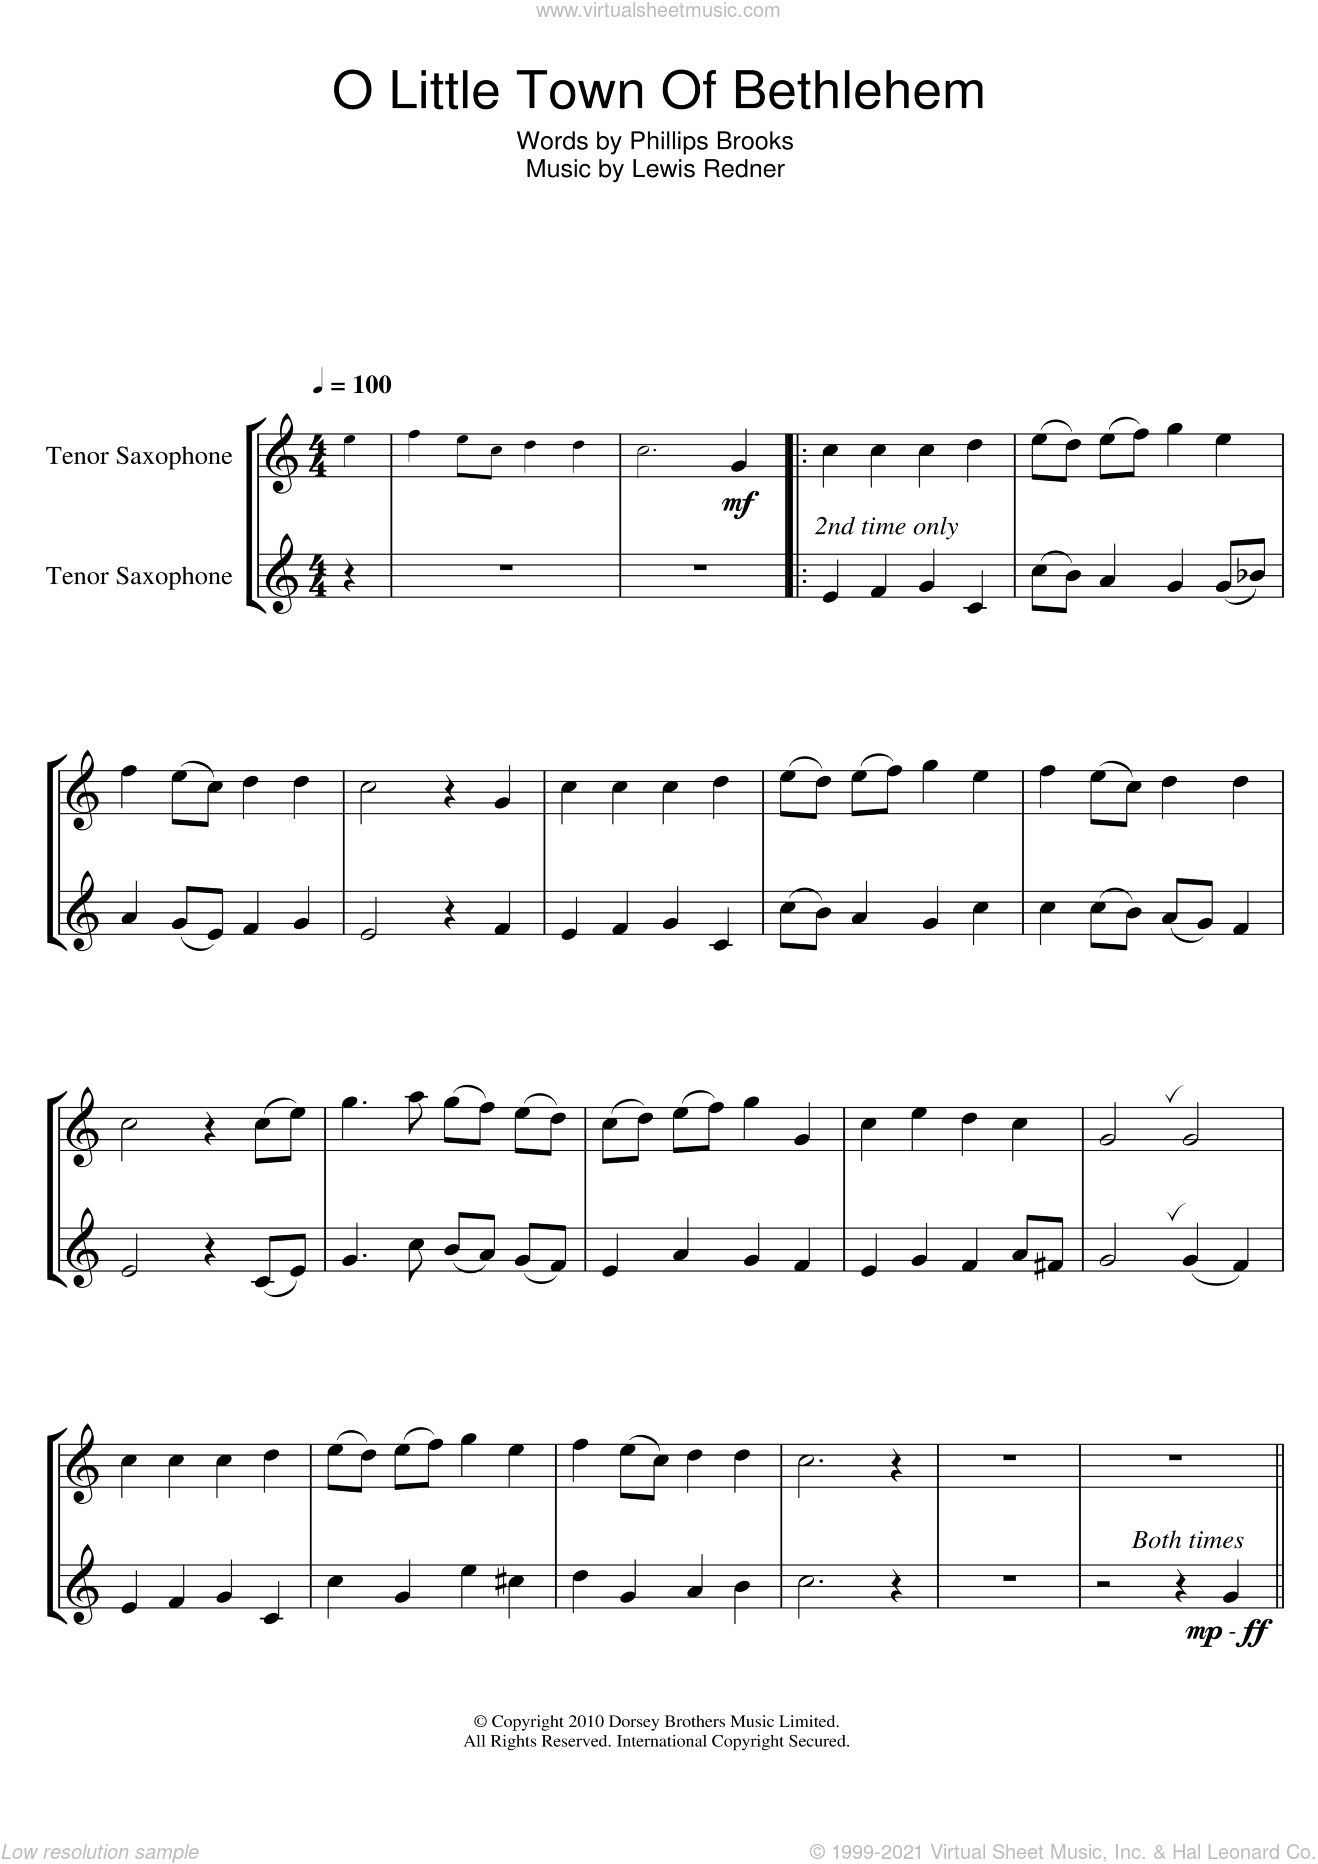 O Little Town Of Bethlehem sheet music for tenor saxophone solo by Lewis Redner, Miscellaneous and Phillips Brooks, intermediate. Score Image Preview.